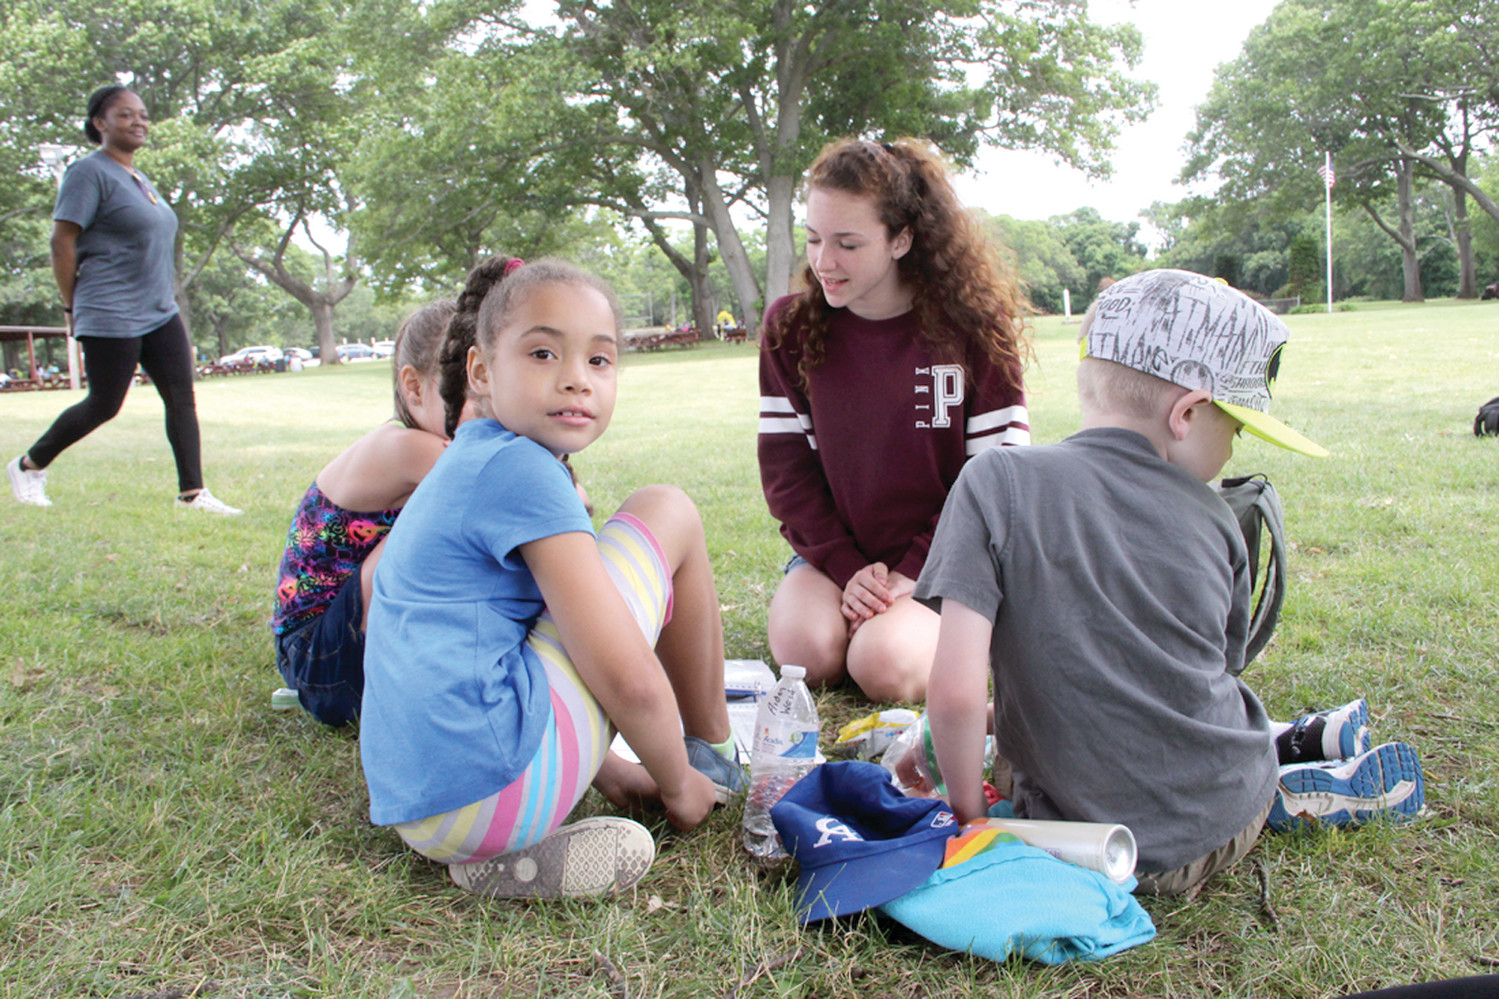 KEEPING TRACK: Junior counselor Myah Cole reviews the camp schedule with her group before the activity stations rotate.